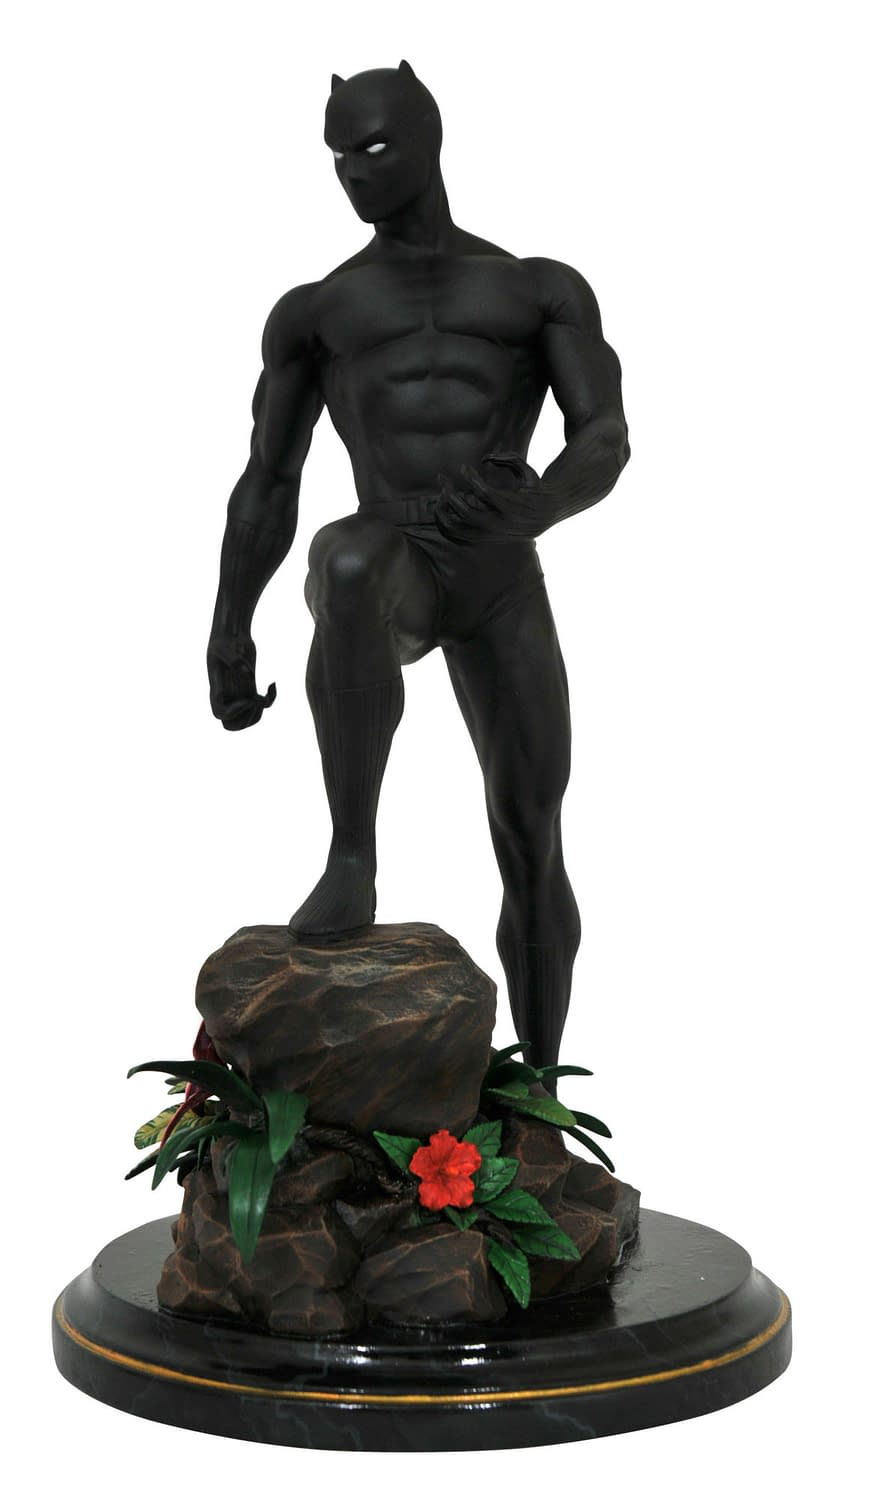 New Marvel Heroes Statues are Coming Soon from Diamond Select